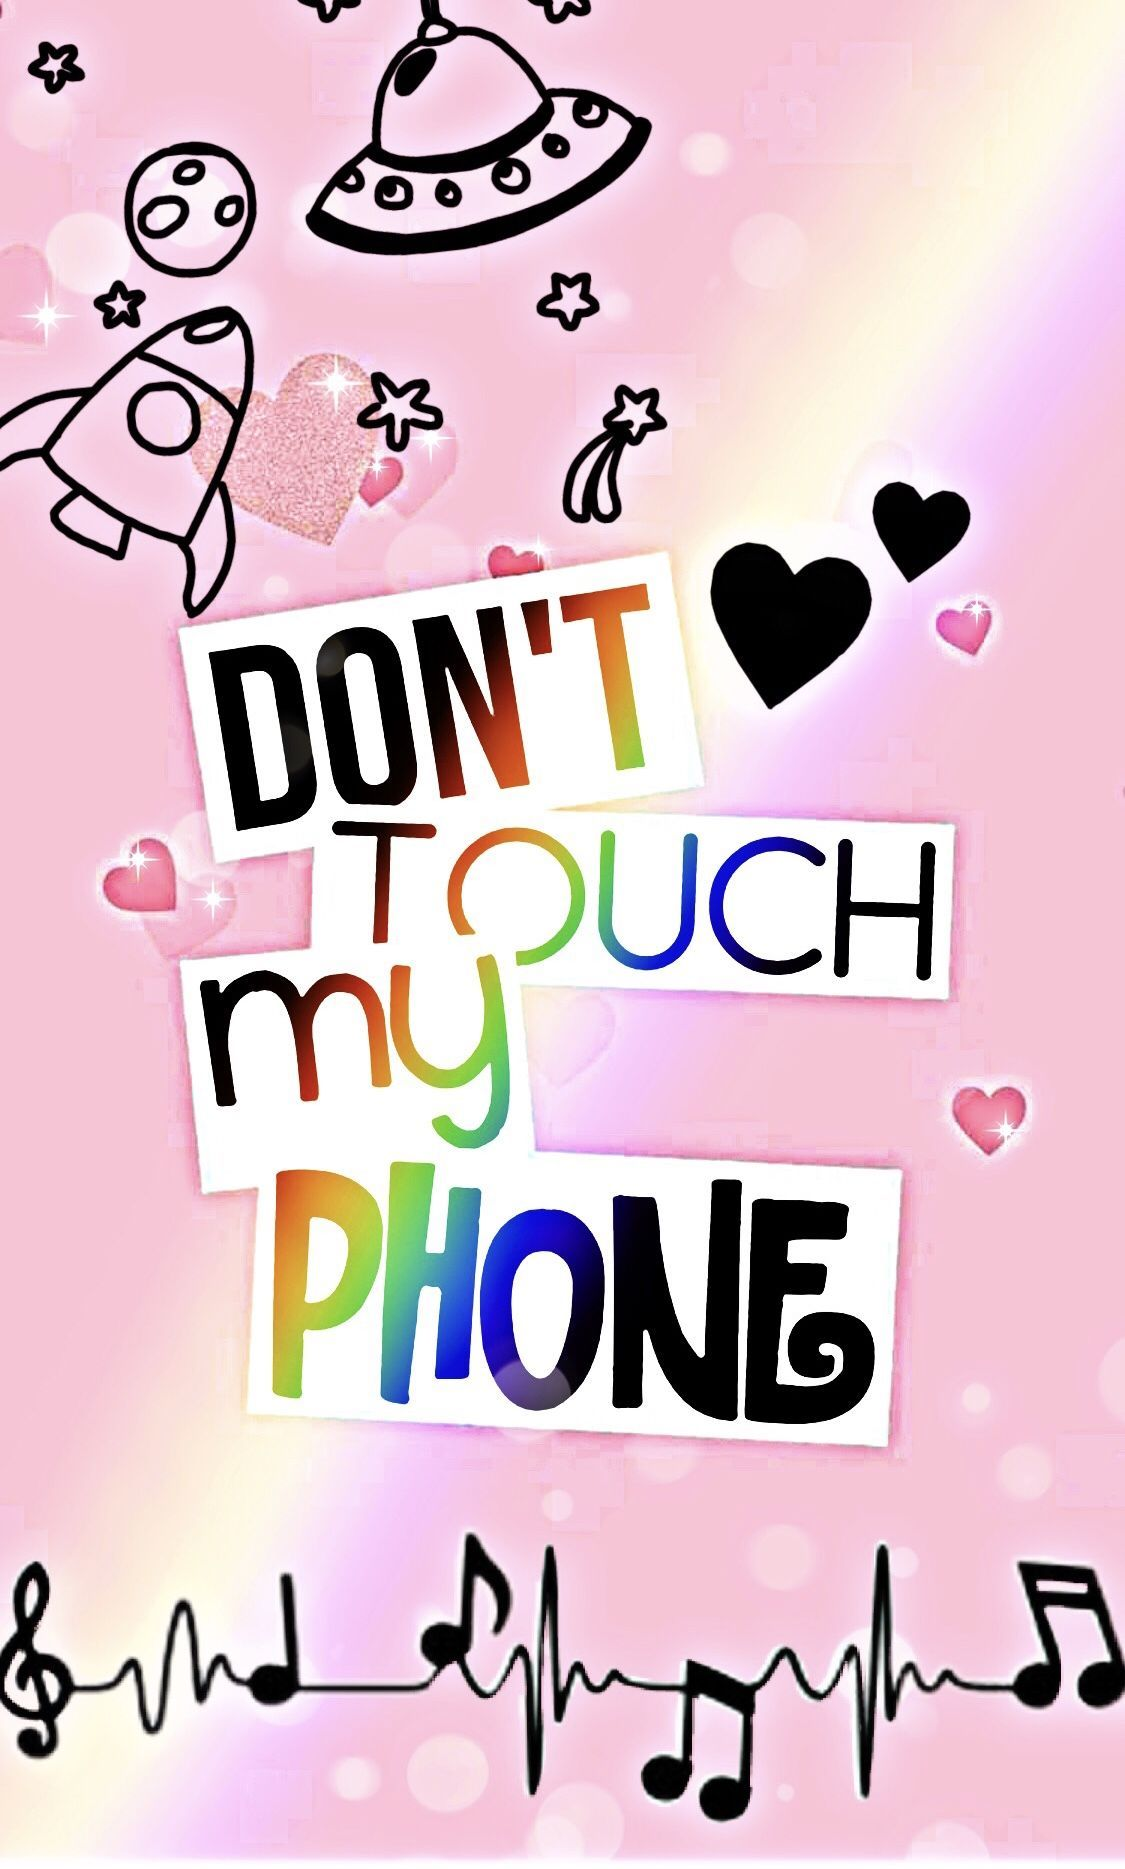 Trends For Girly Cute Rose Gold Dont Touch My Phone Wallpaper Wallpaper In 2020 Dont Touch My Phone Wallpapers Cute Emoji Wallpaper Funny Phone Wallpaper